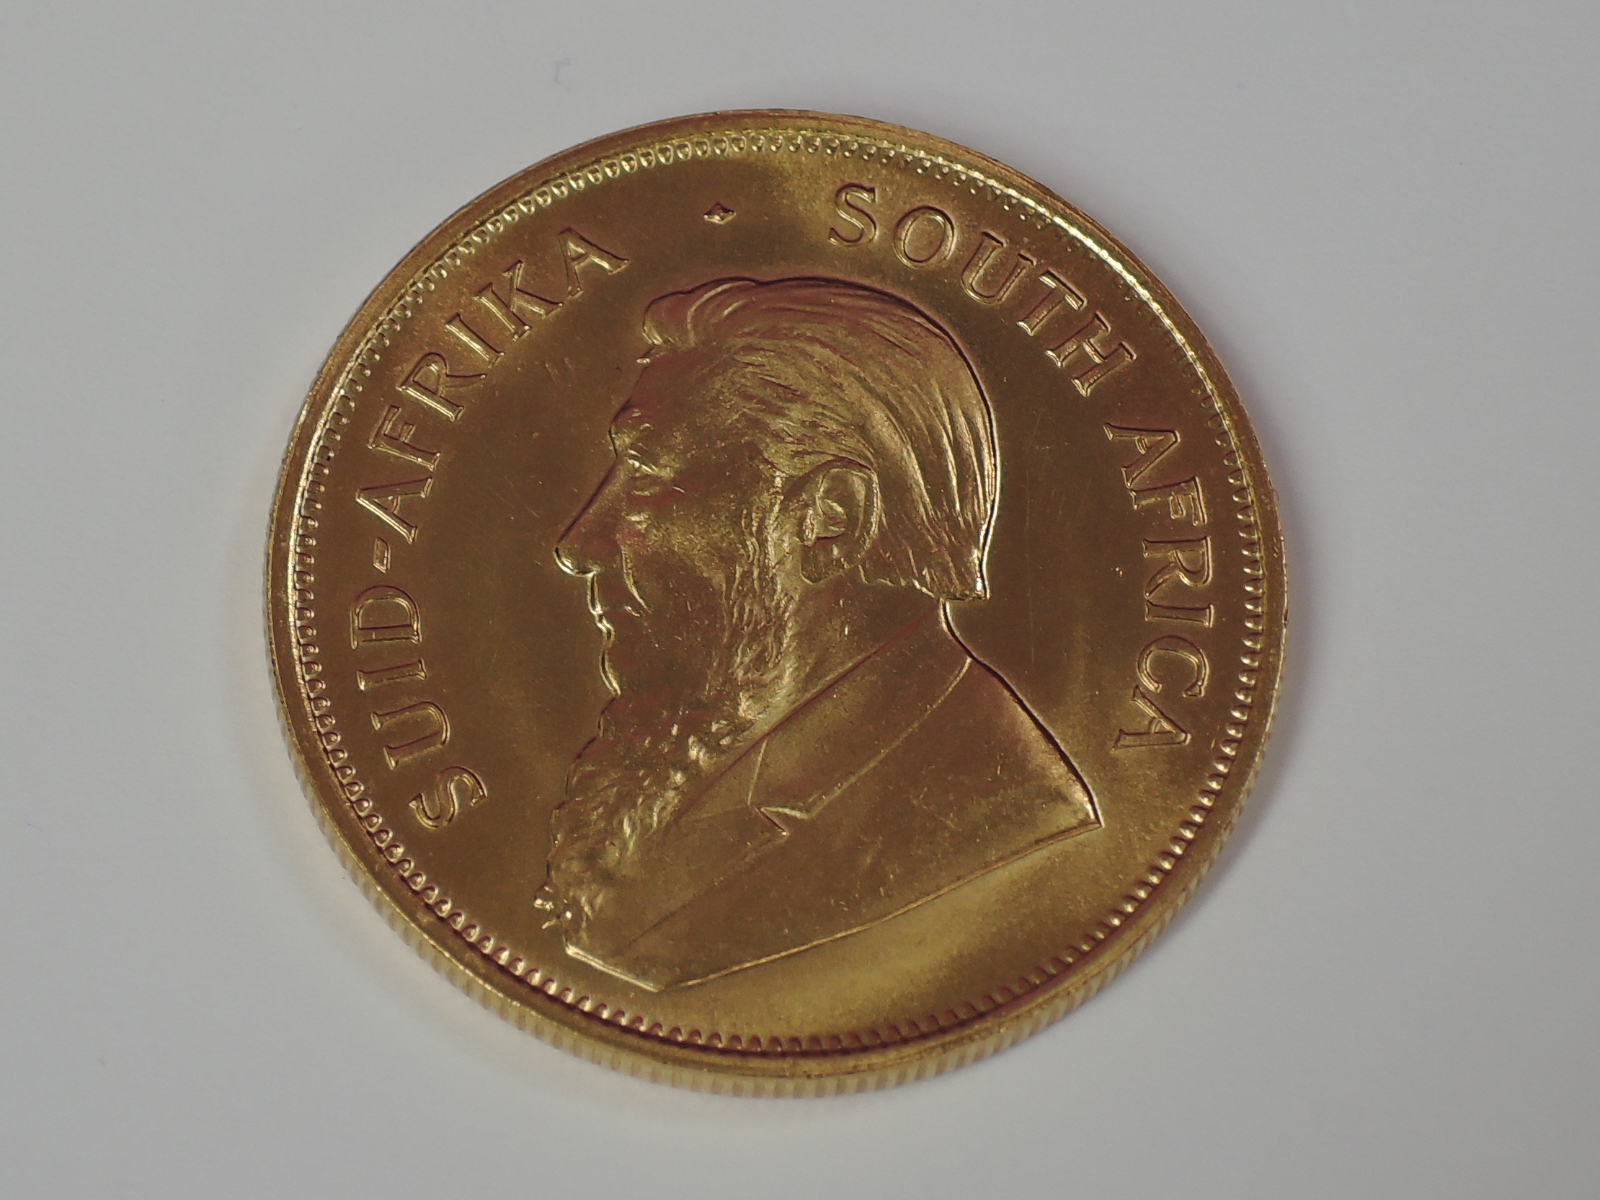 Lot 622 - A gold 1oz 1978 South African Krugerrand coin, in plastic case